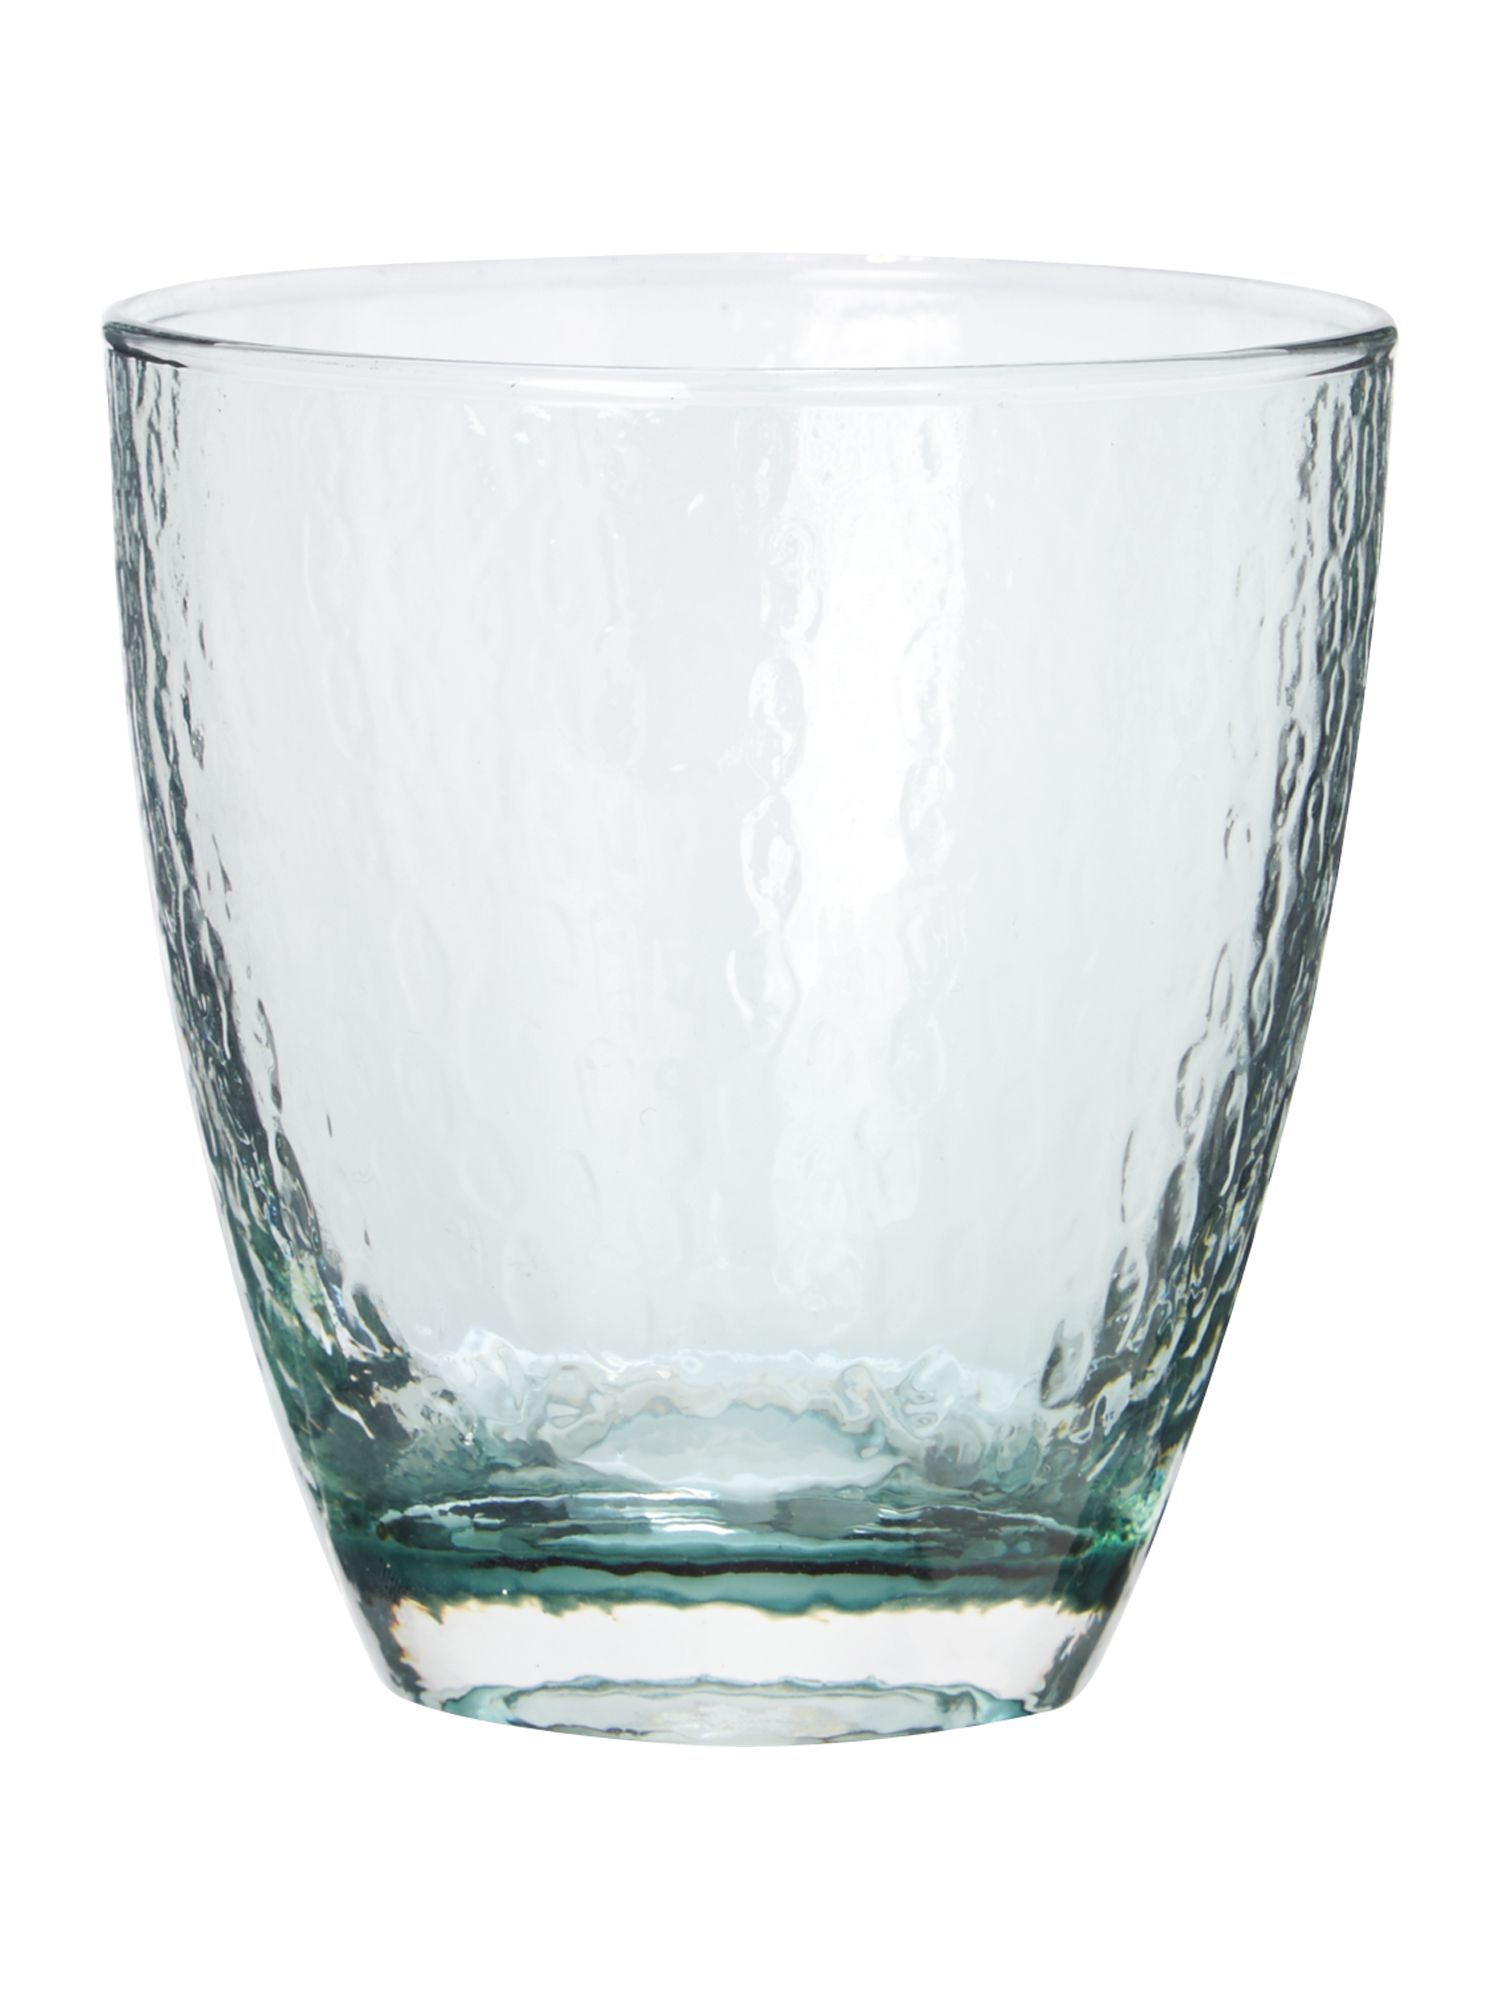 Ice pattern water glass in grey